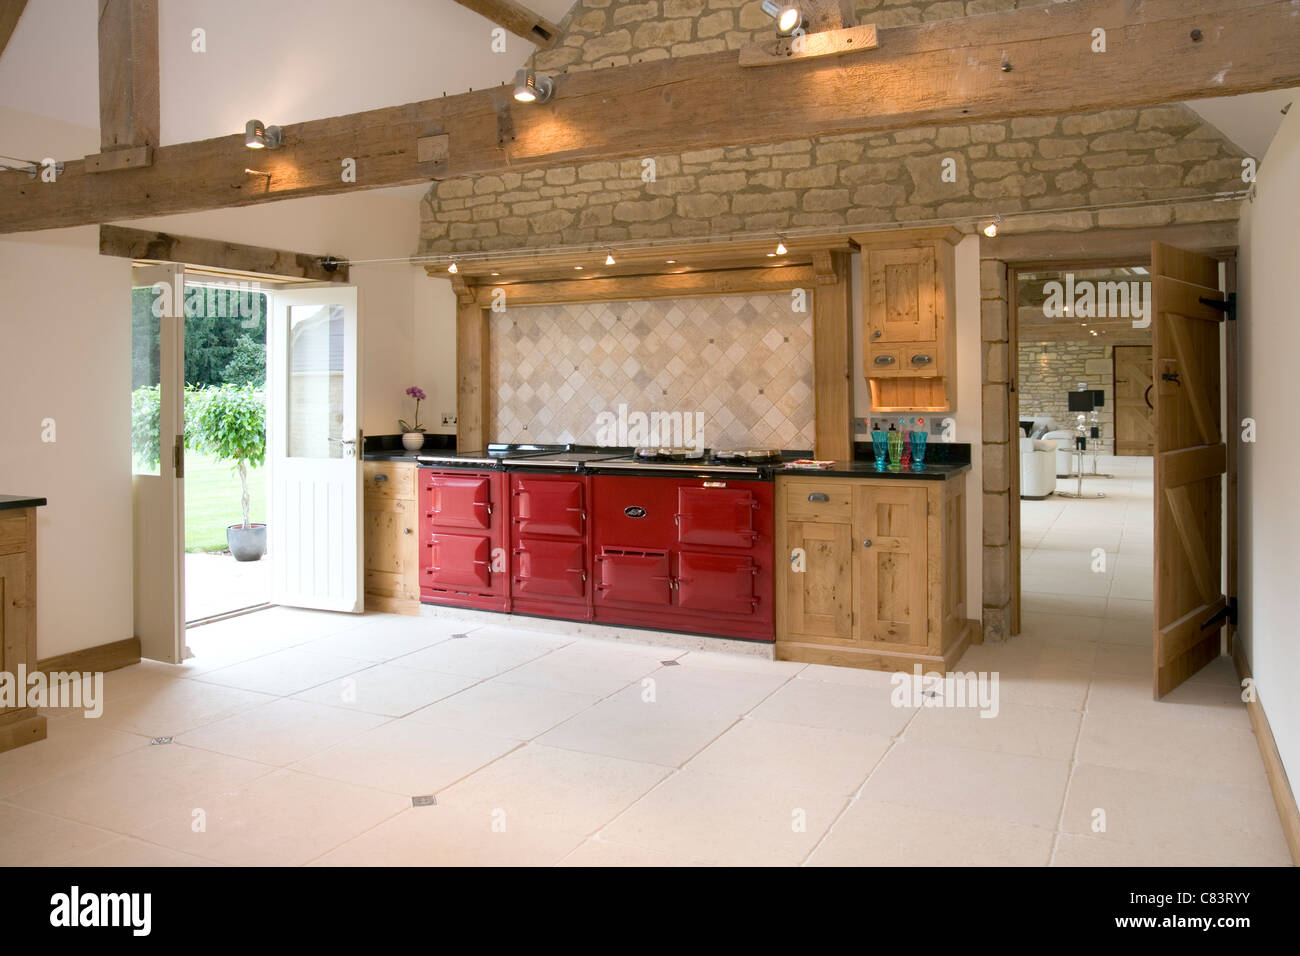 Brand New Contemporary Upmarket Fitted Kitchen With Aga Cooker Stock Photo Royalty Free Image